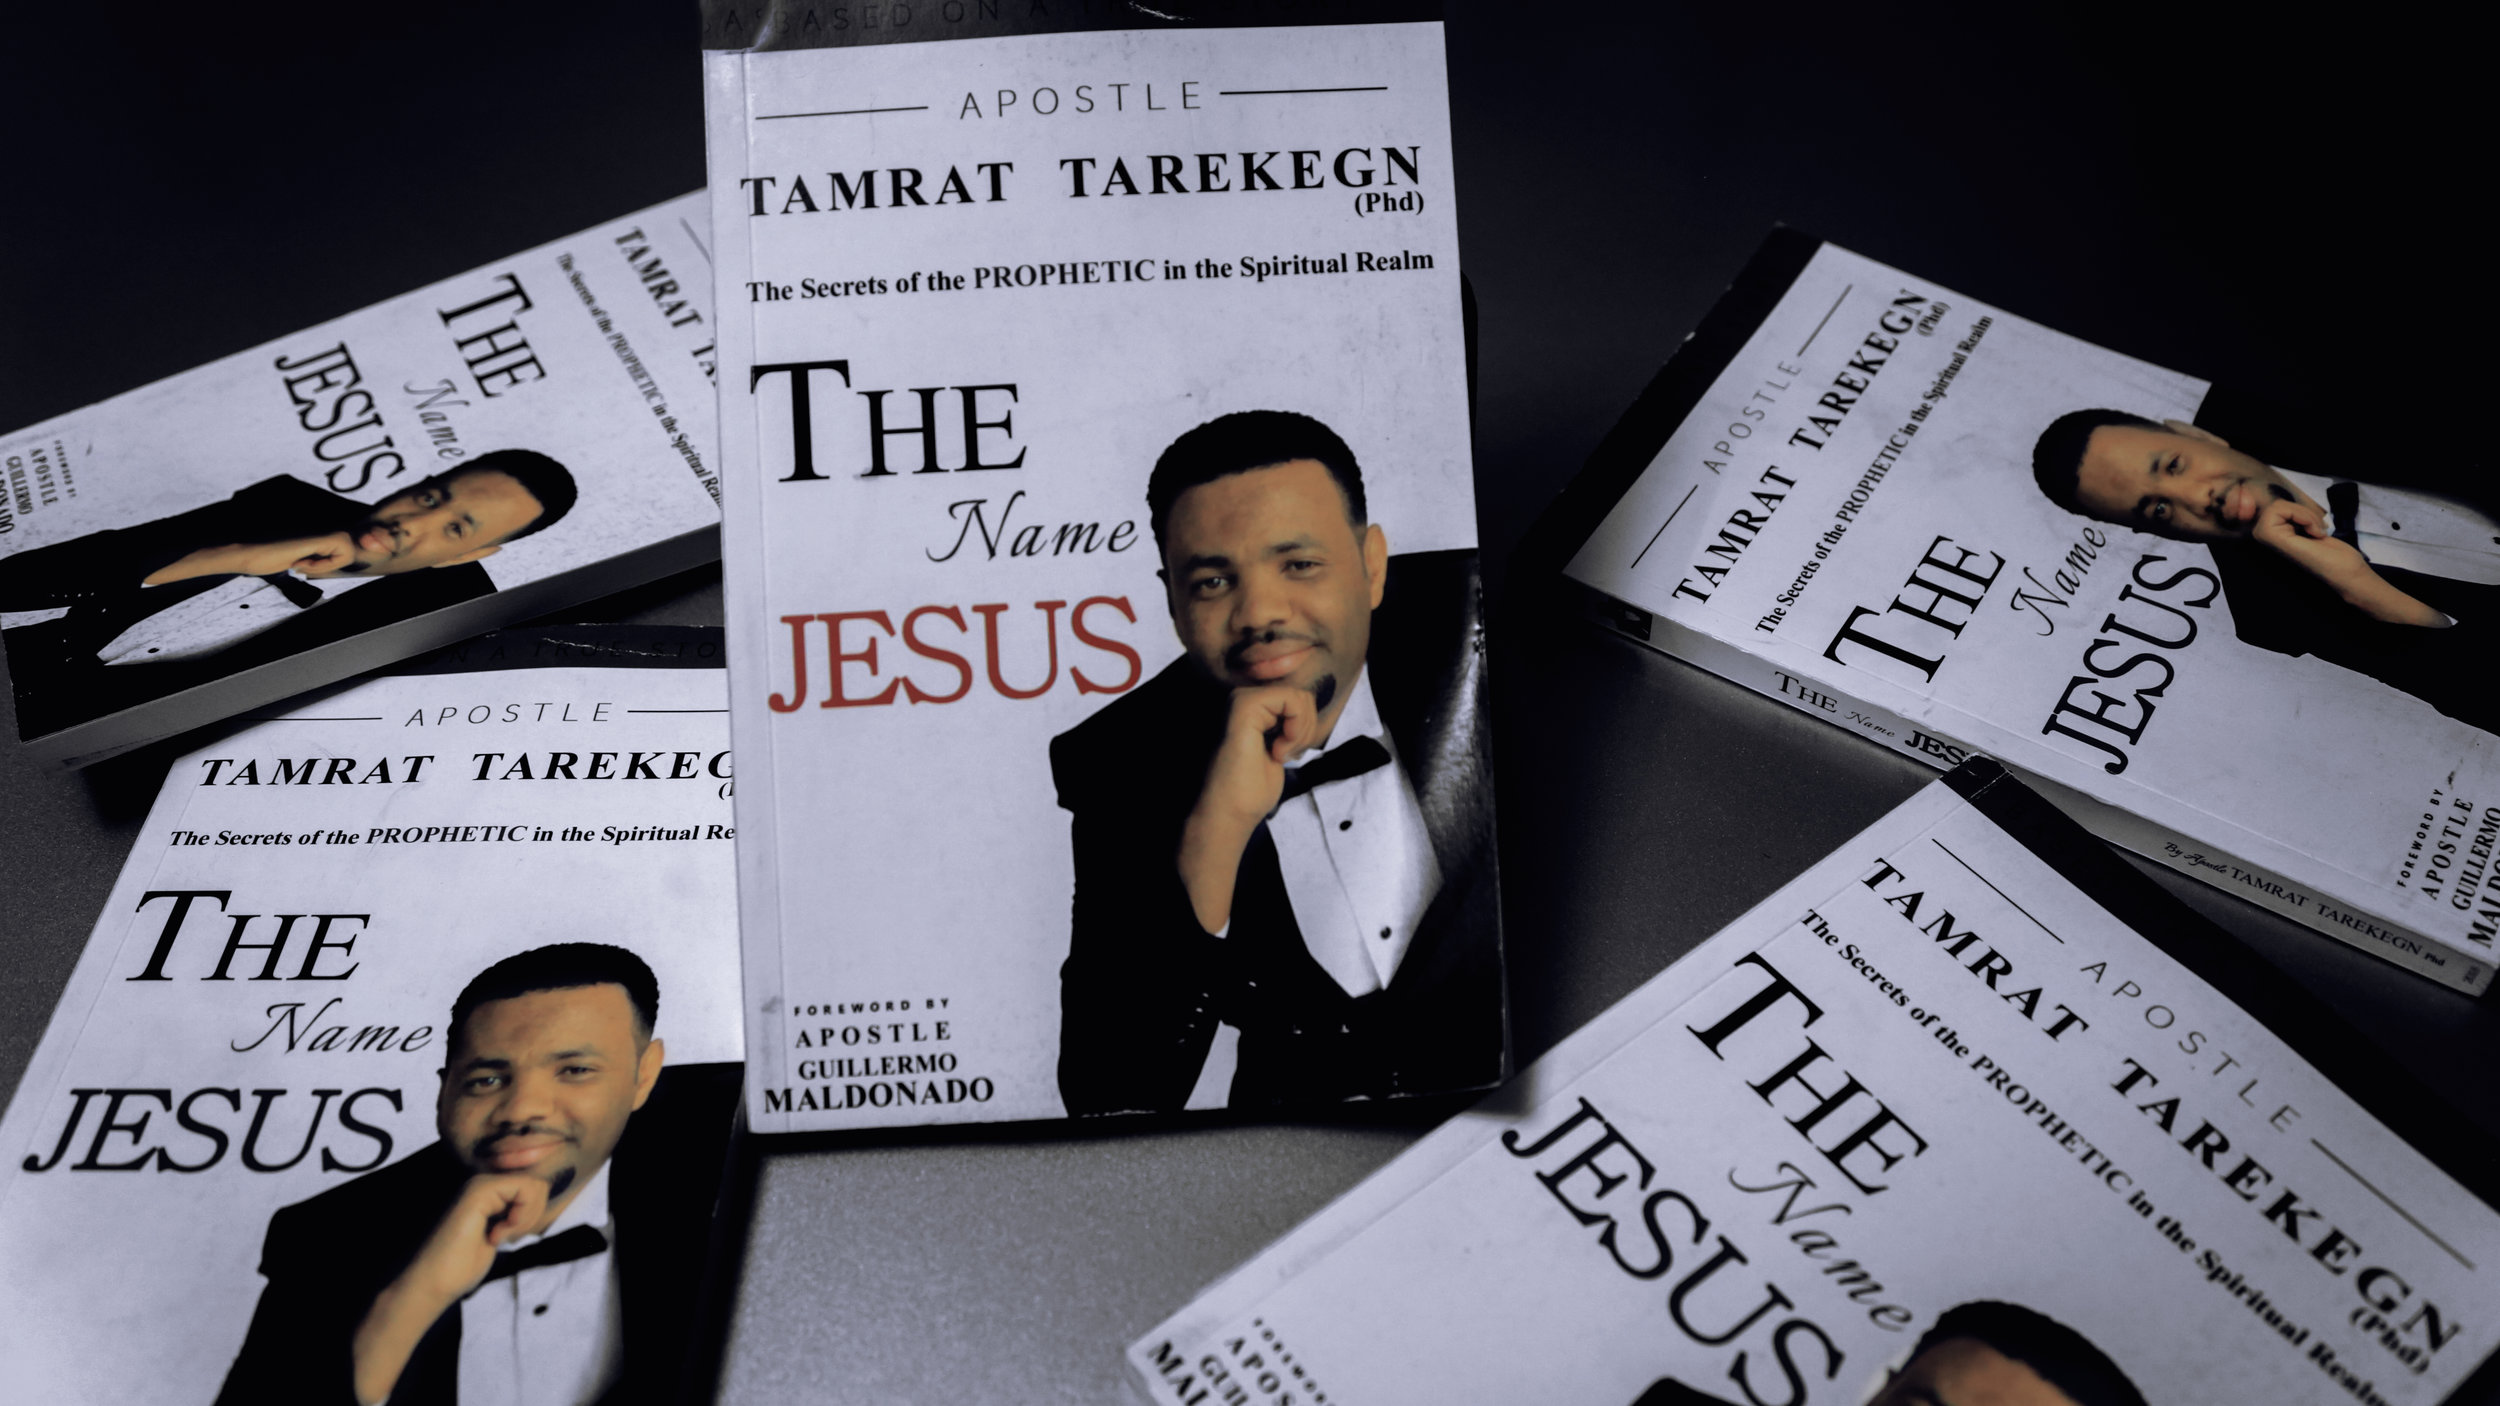 STORE - Browse and purchase Apostle Tamrat's published work